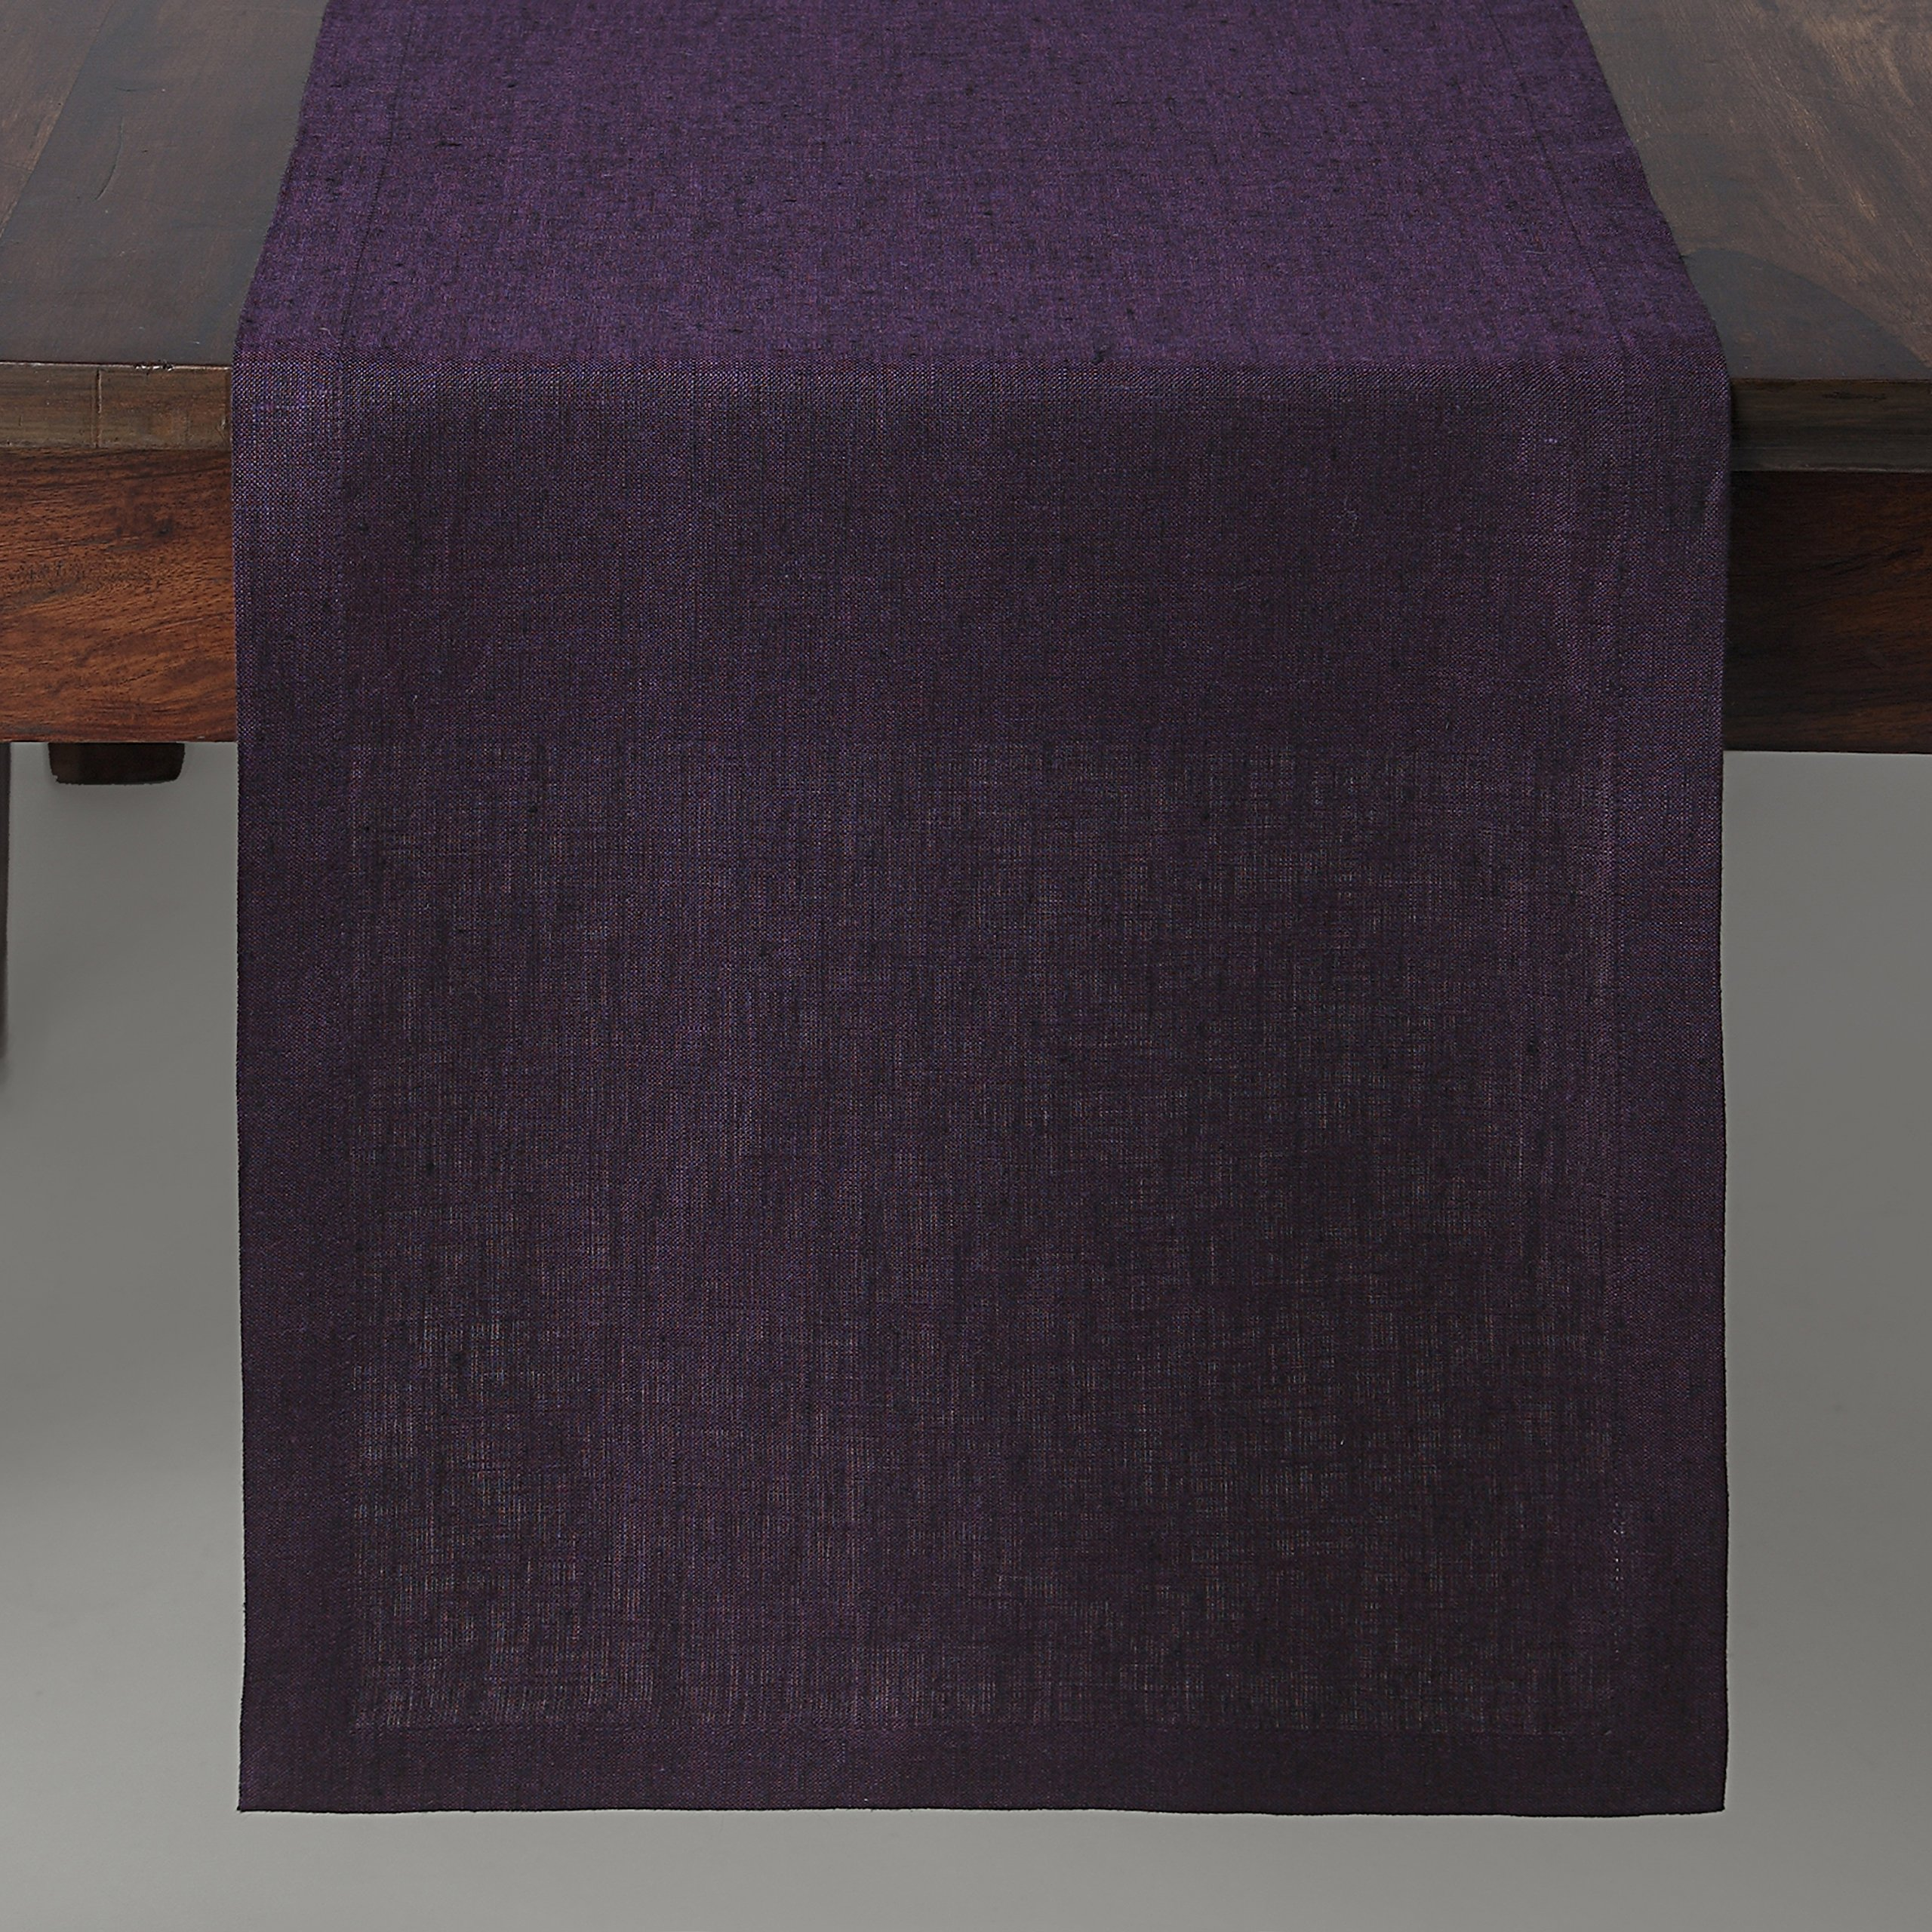 Solino Home 100% Pure Linen Table Runner Athena, Natural Fabric Handcrafted Runner, Purple 14 x 36 Inch by Solino Home (Image #3)